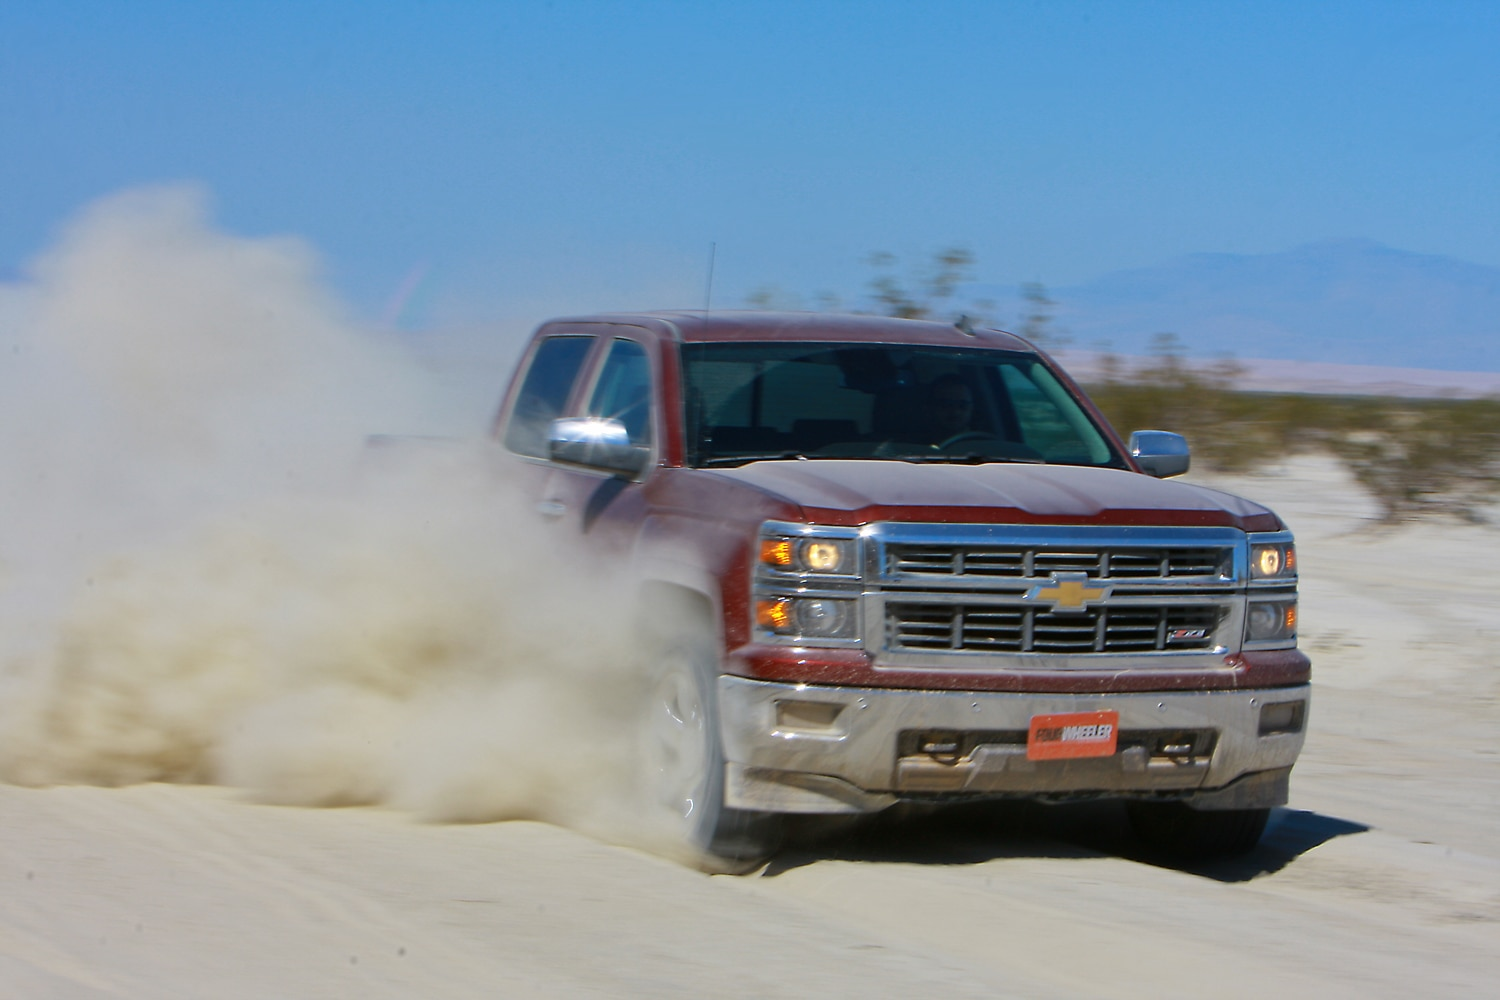 2014 Four Wheeler Of The Year Day 4 Silt Bed   5  2014 Chevy Silverado Z71 powering through silt.JPG